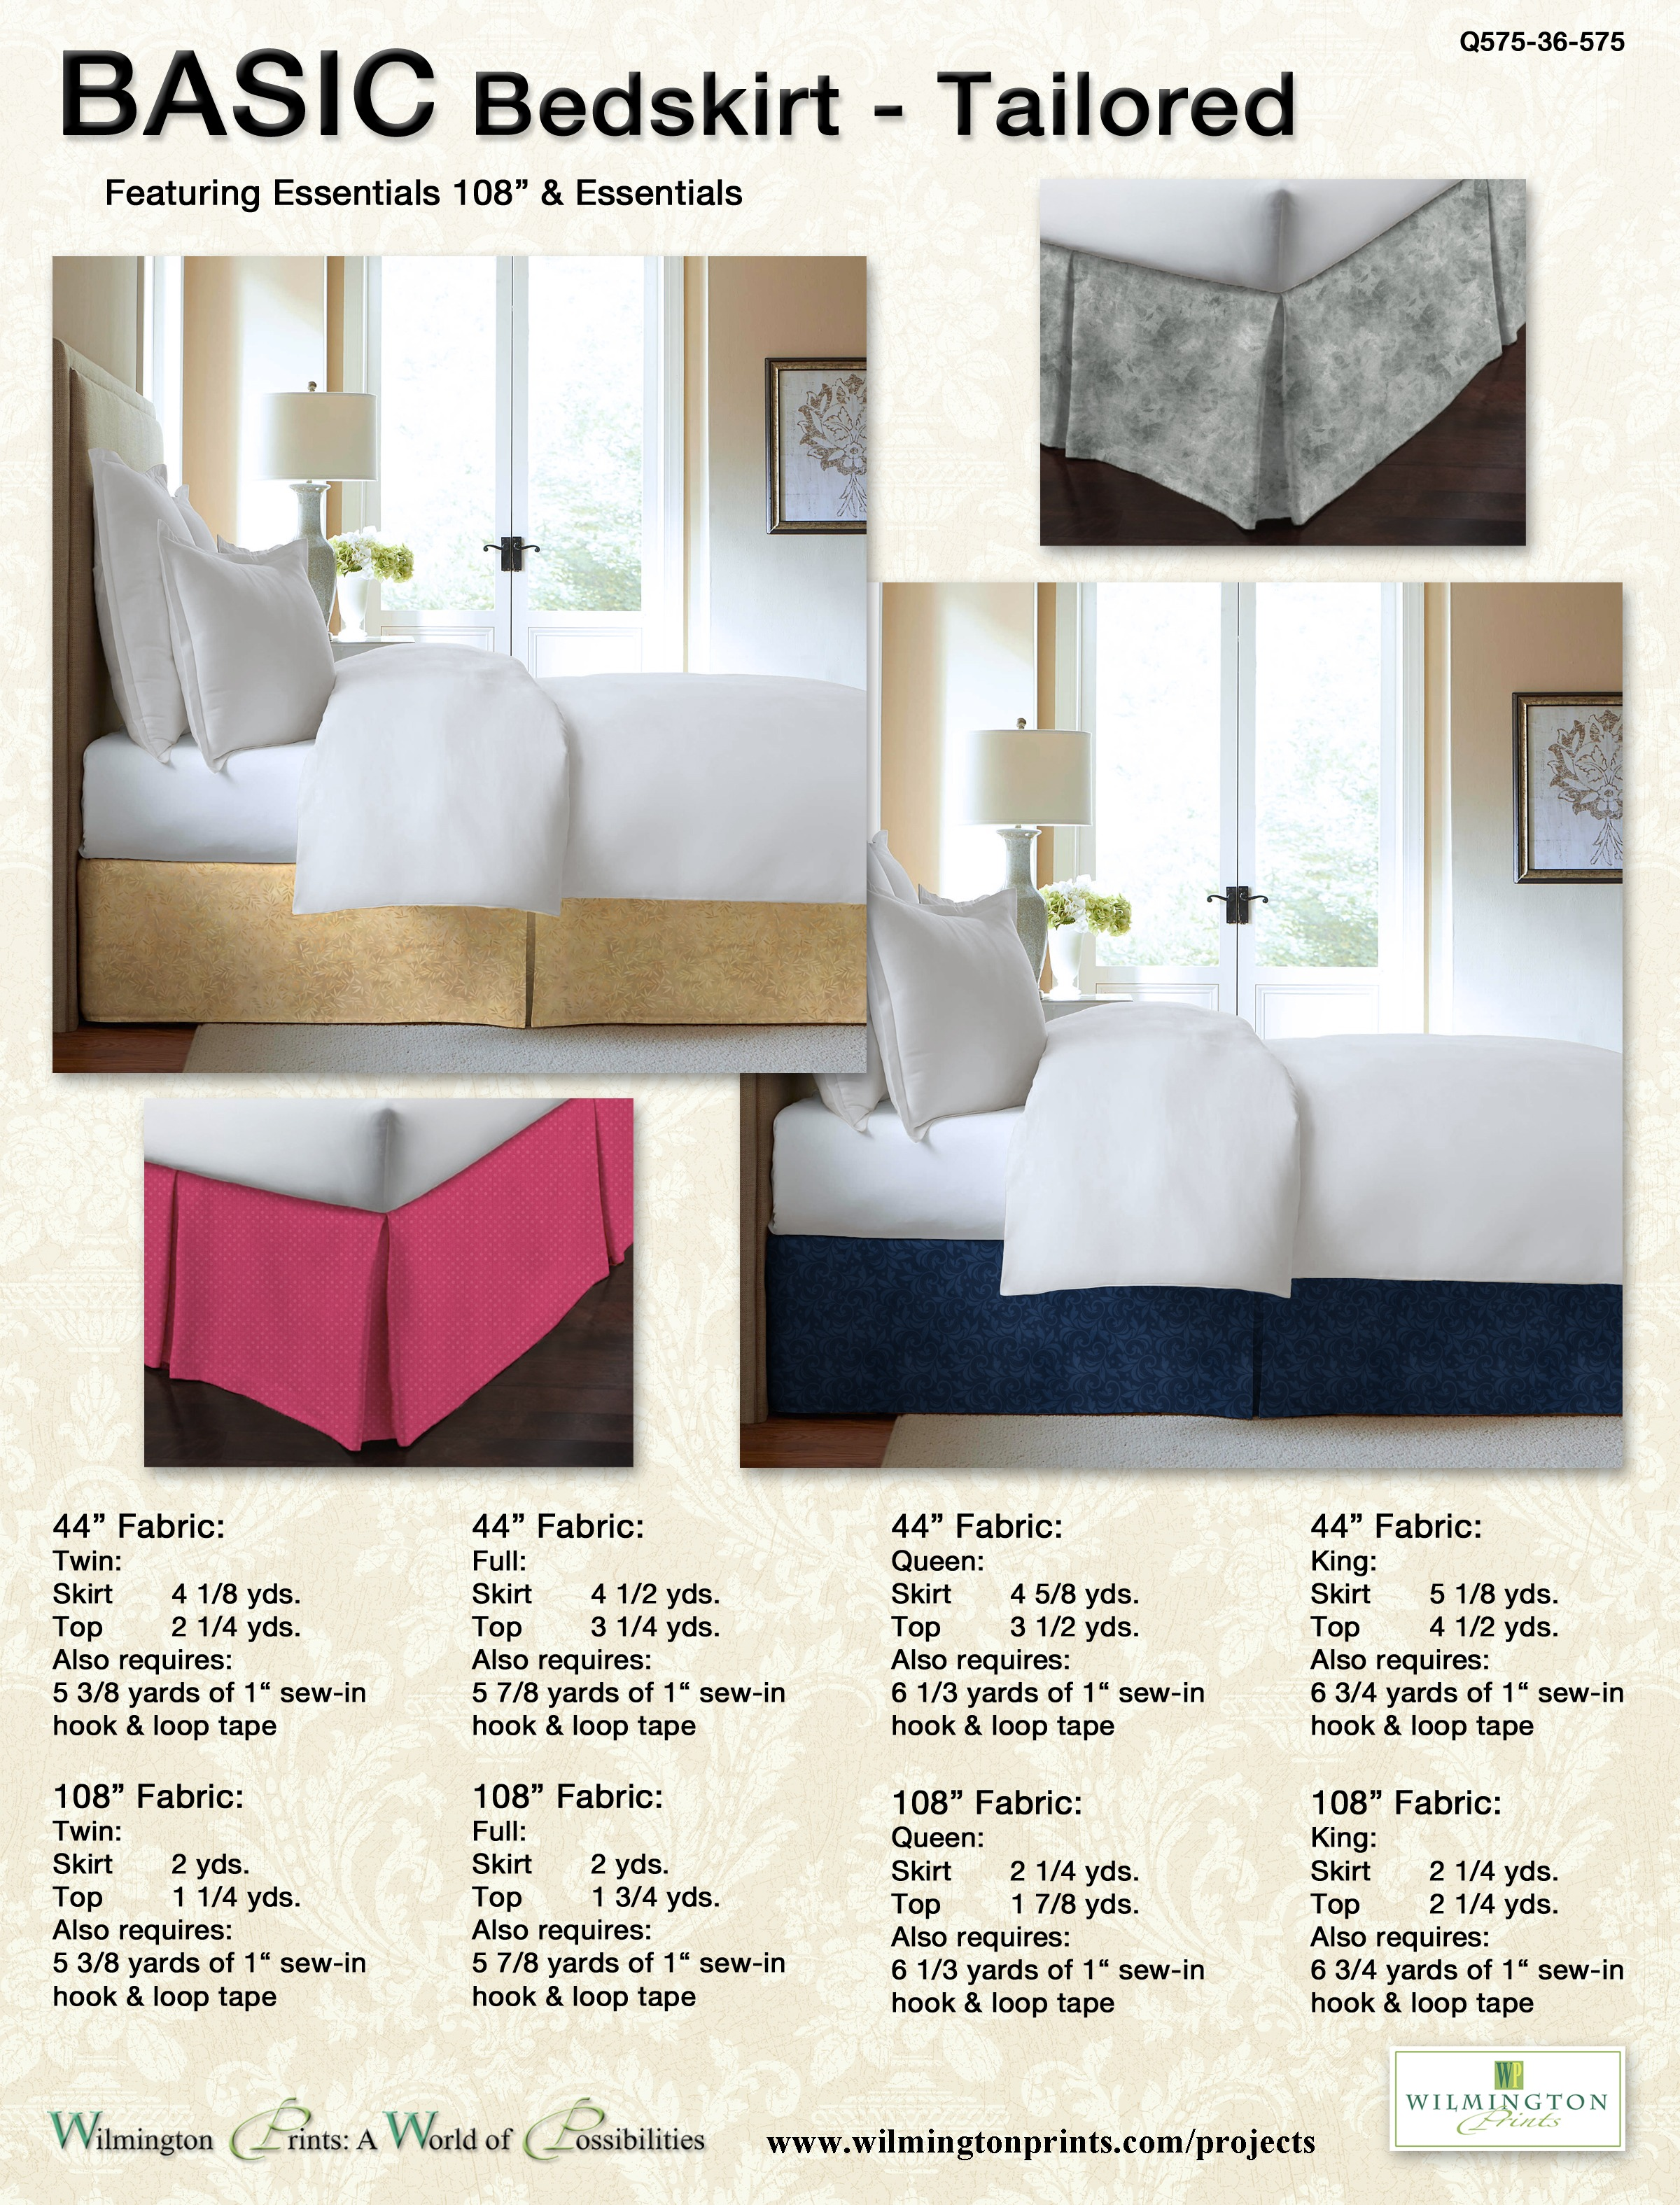 Basic Bedskirt - Tailored